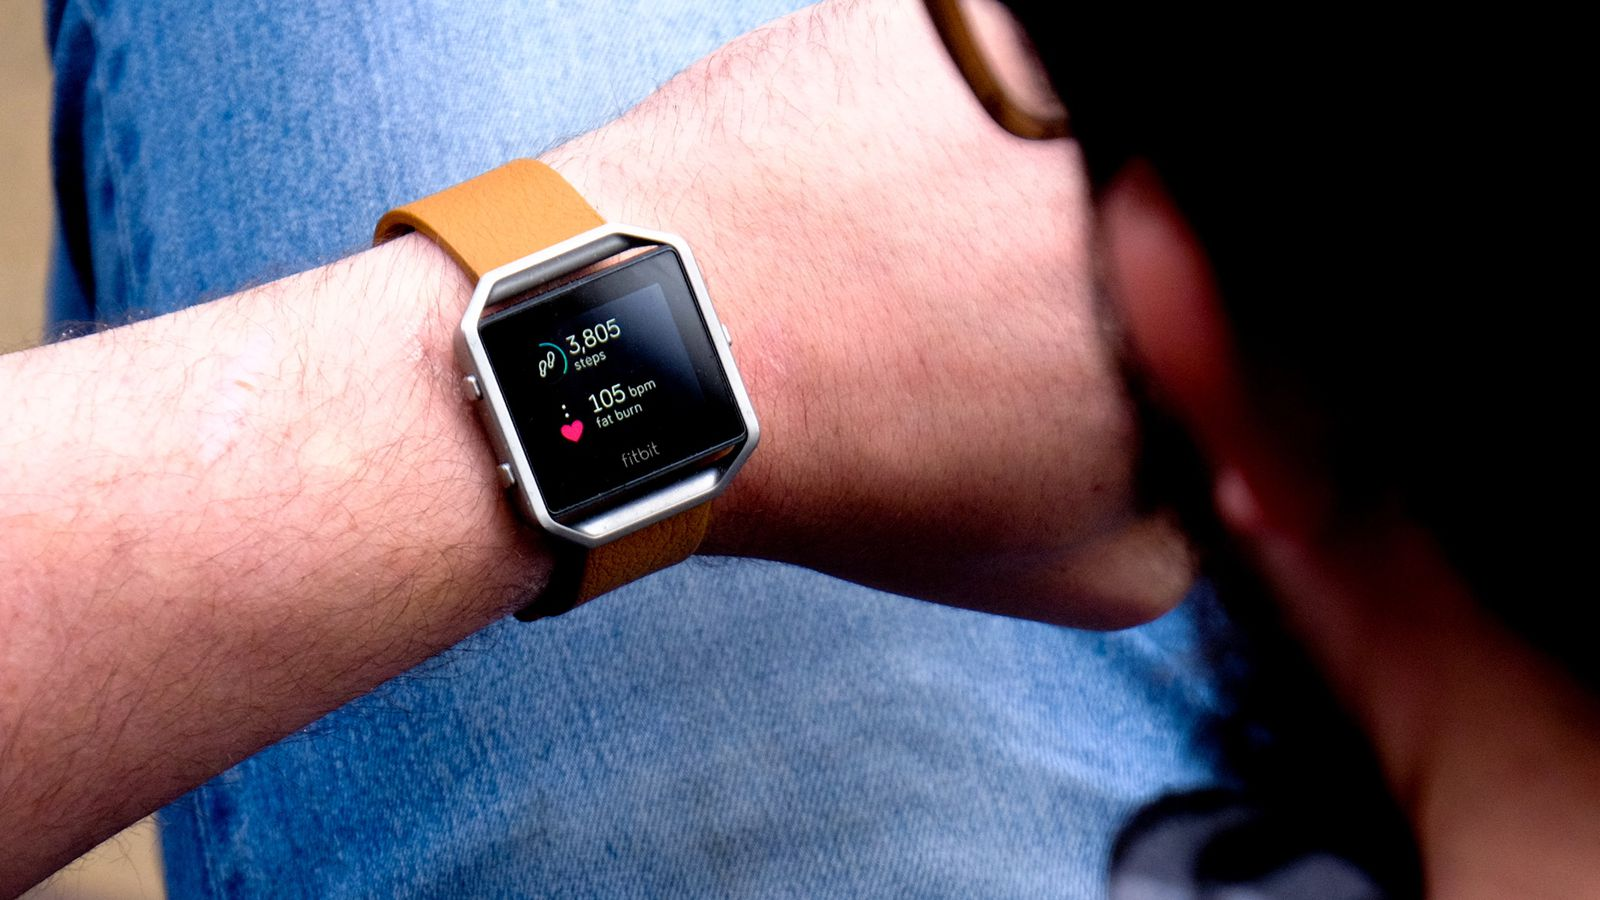 Fitbit Blaze review: a 'smarter' fitness tracker is still kind of dumb | The Verge